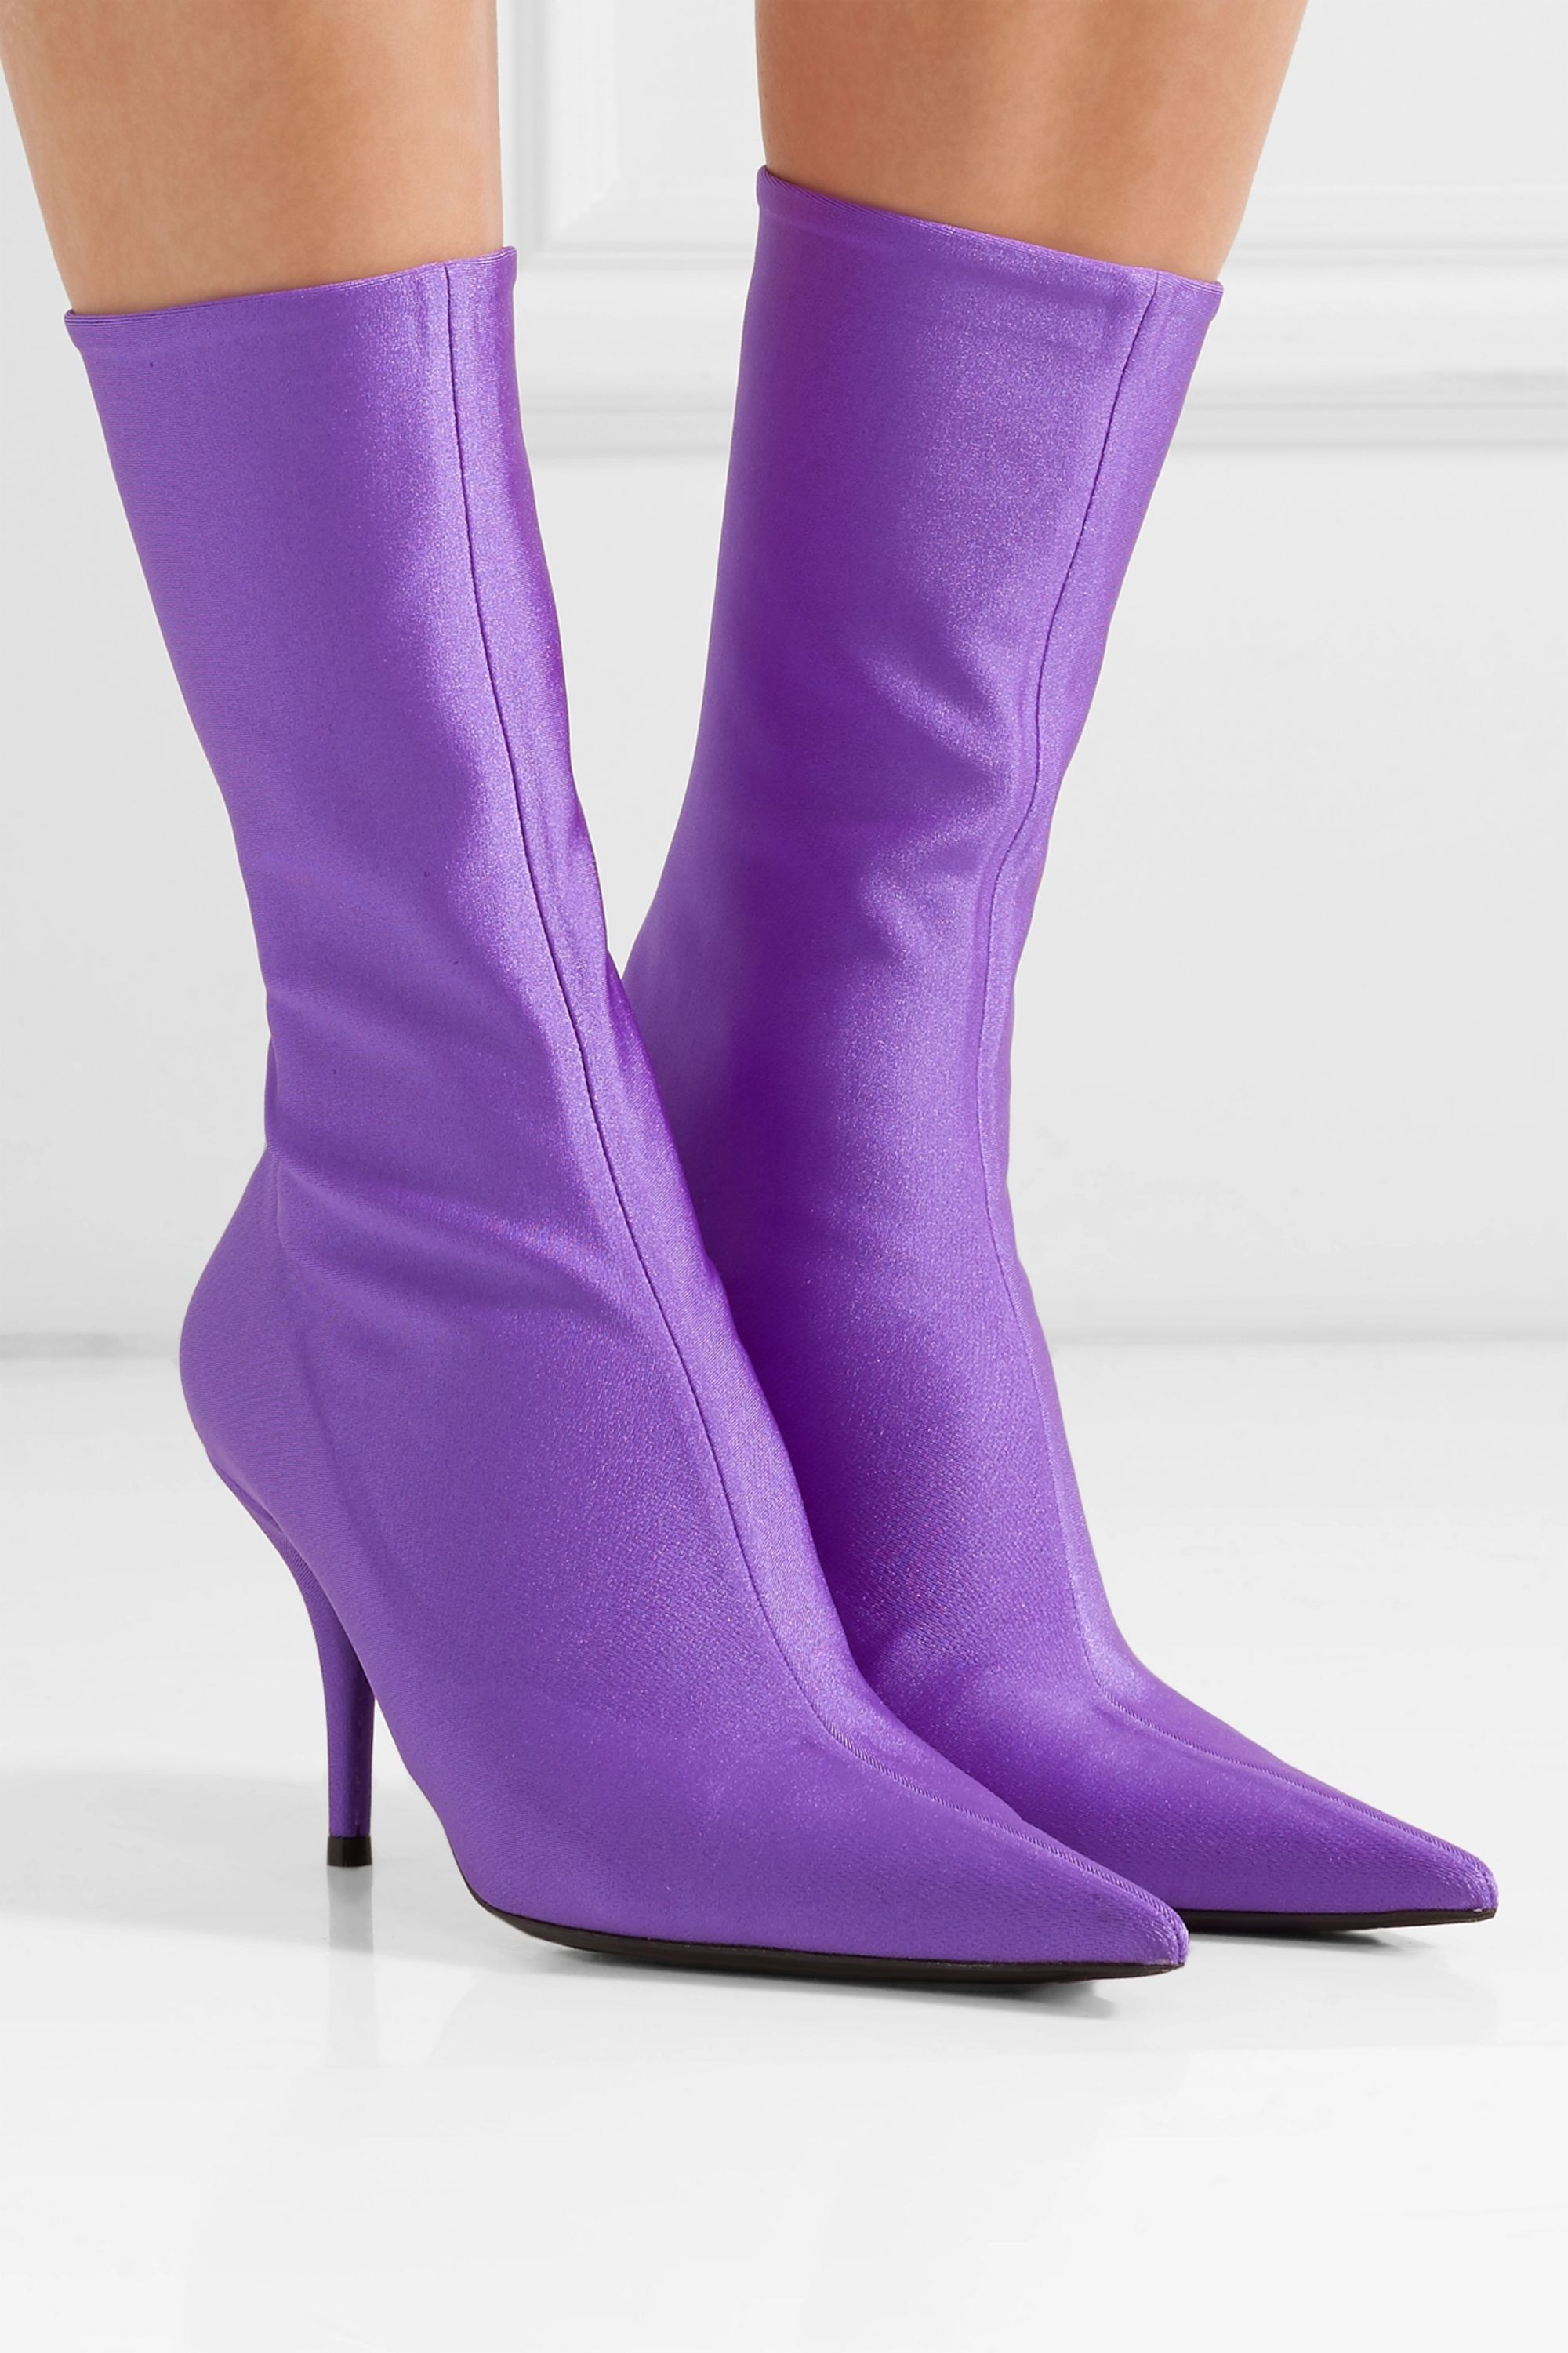 Knife spandex sock boots by BALENCIAGA, available on net-a-porter.com for $833 Kim Kardashian Shoes Exact Product